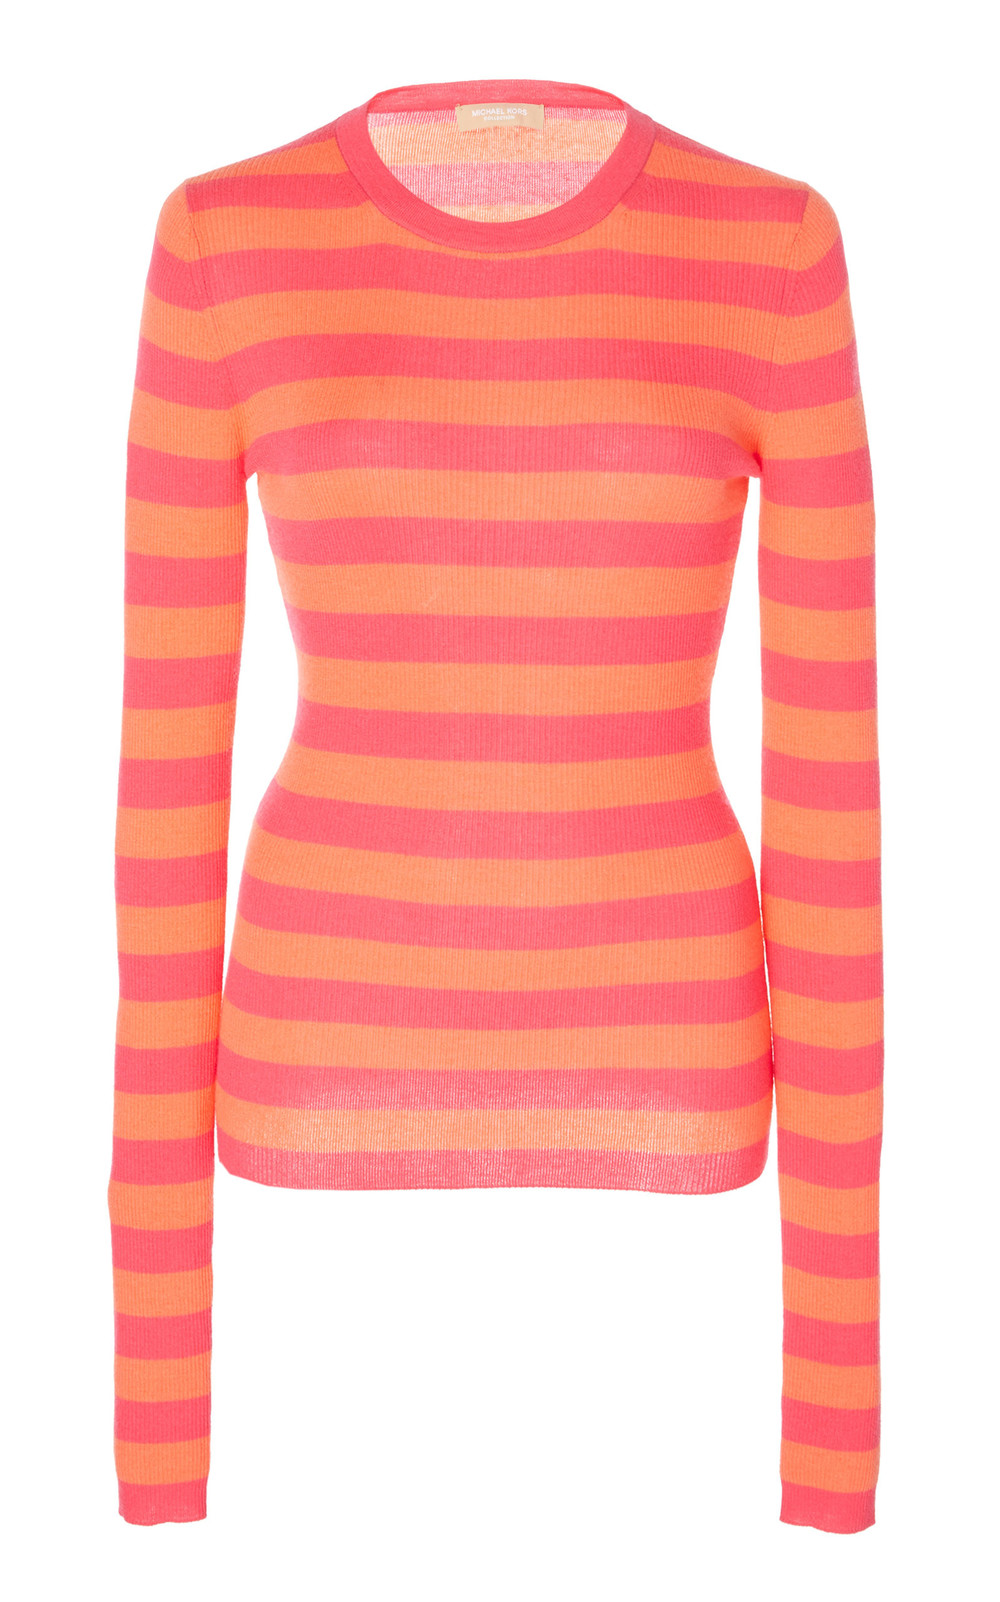 Michael Kors Collection Striped Cashmere Top in pink